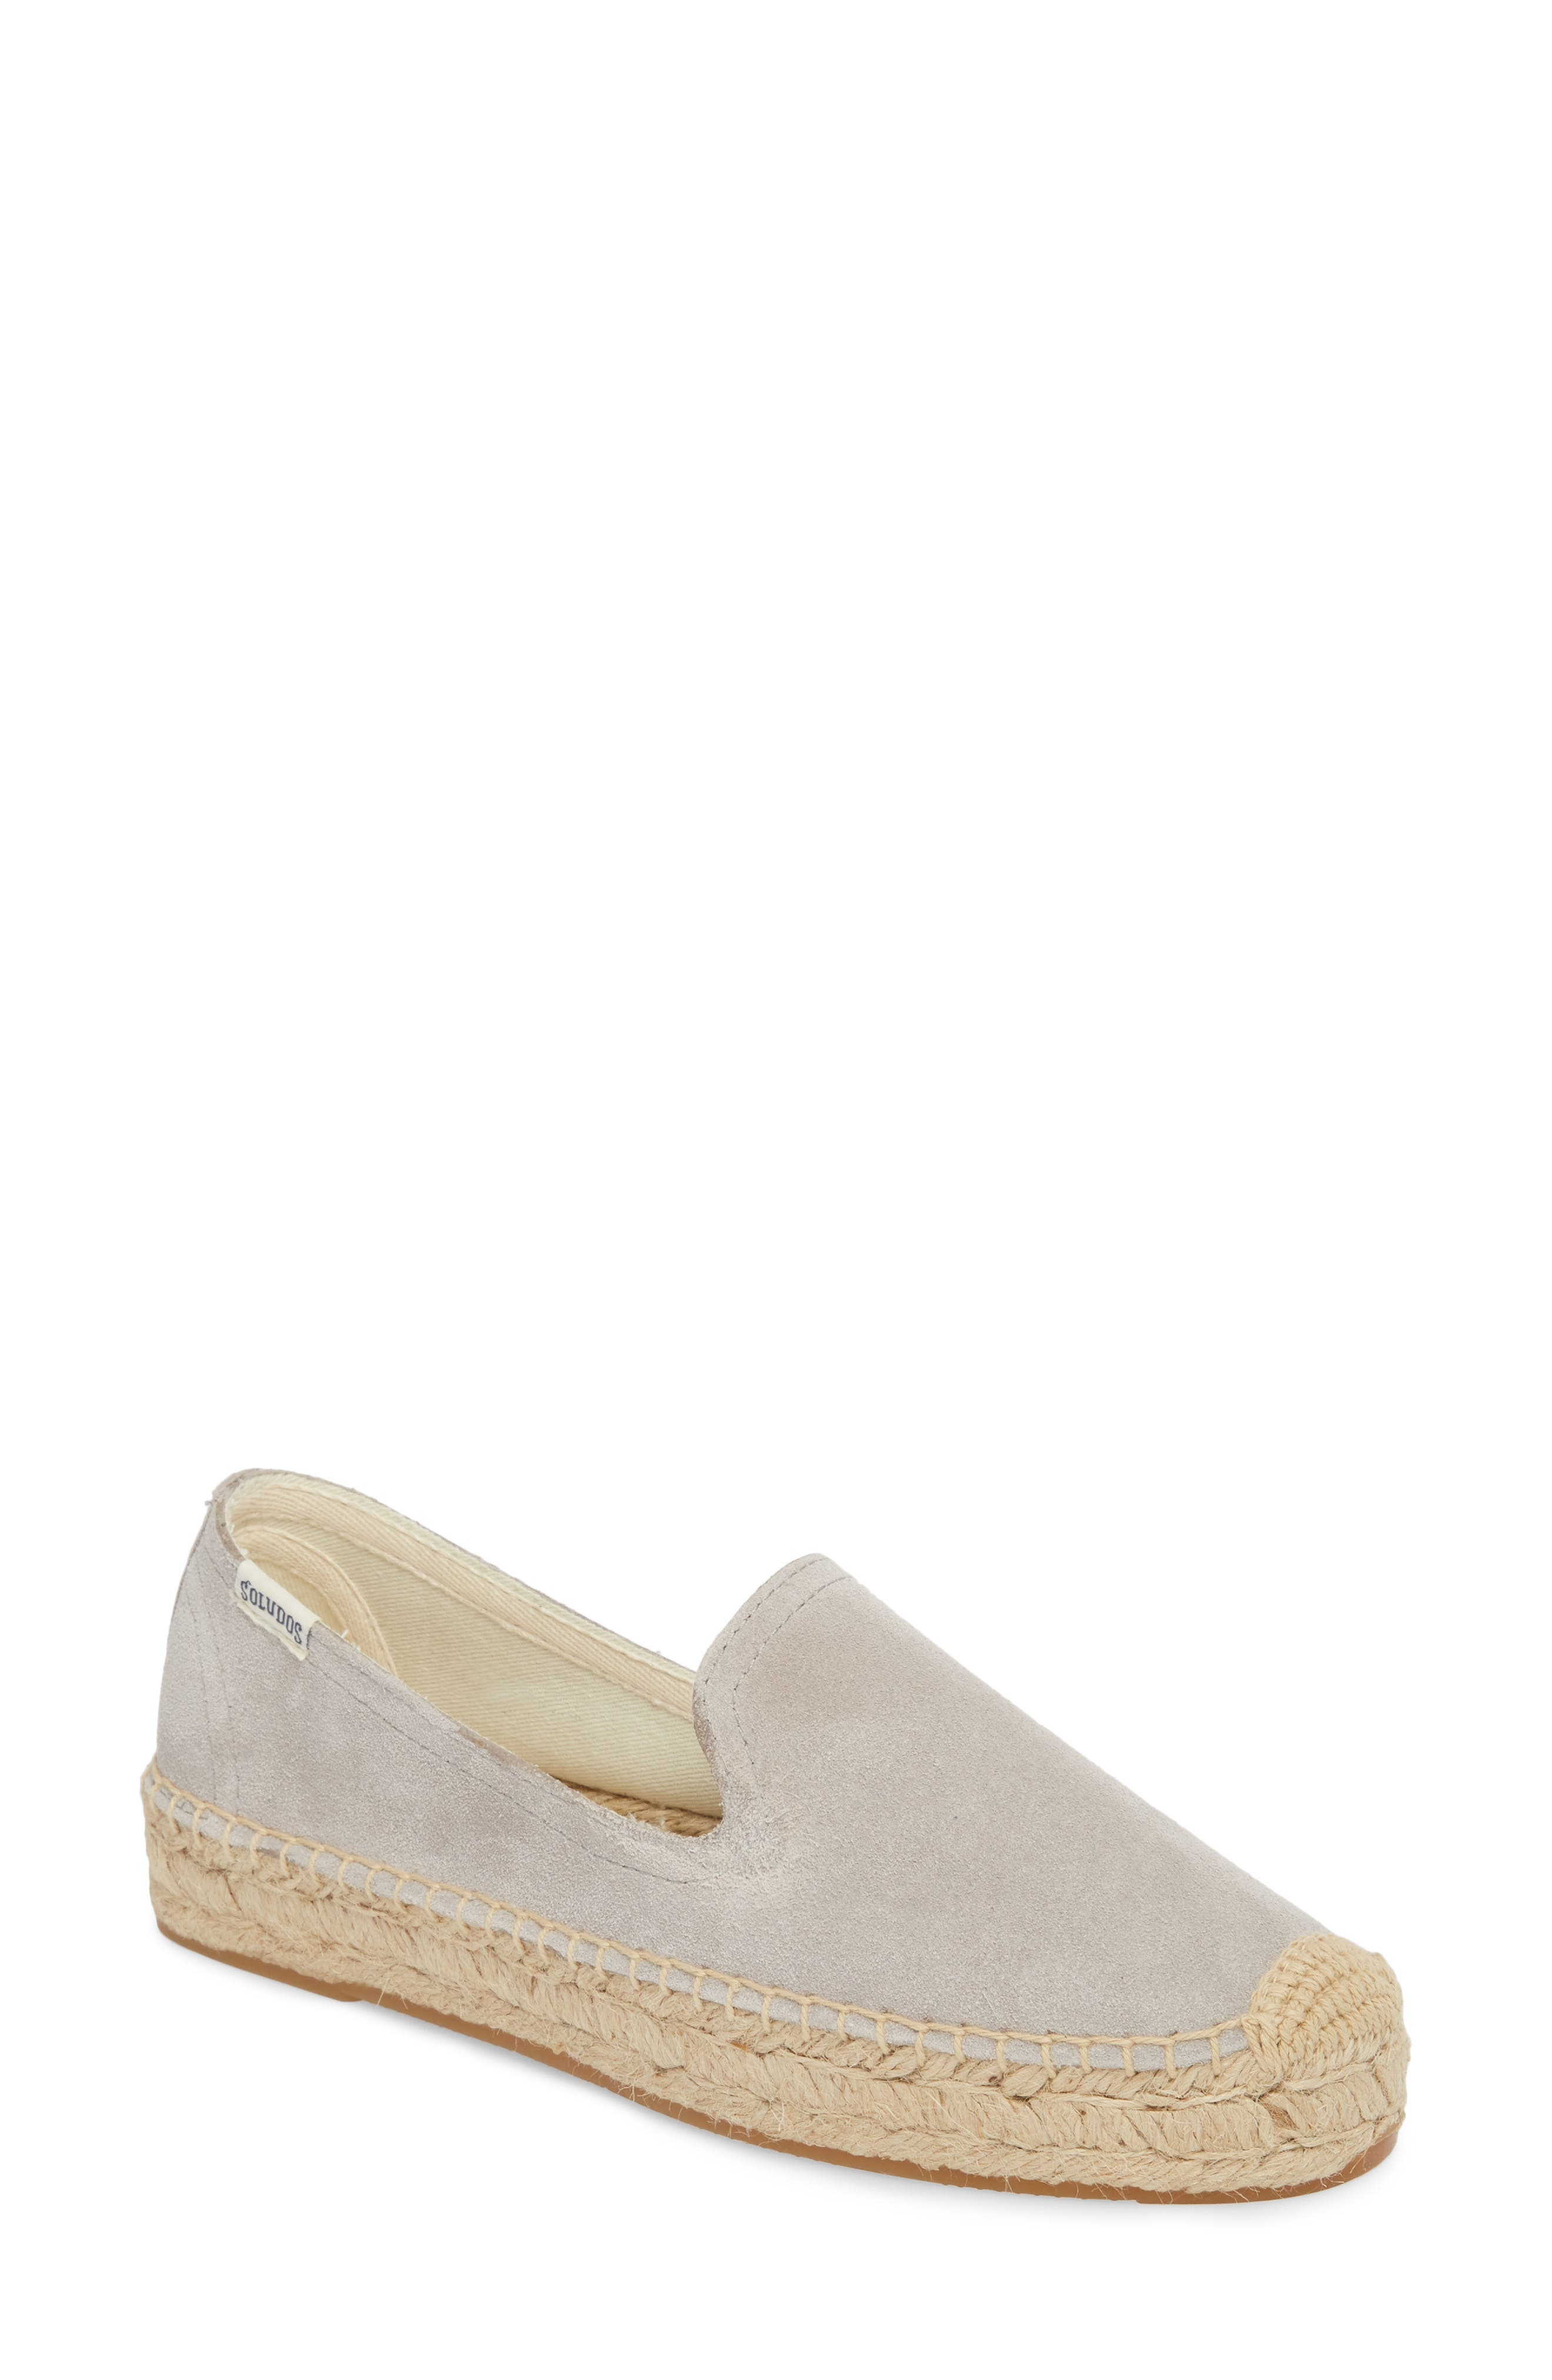 Espadrille Loafer,                         Main,                         color, STONE